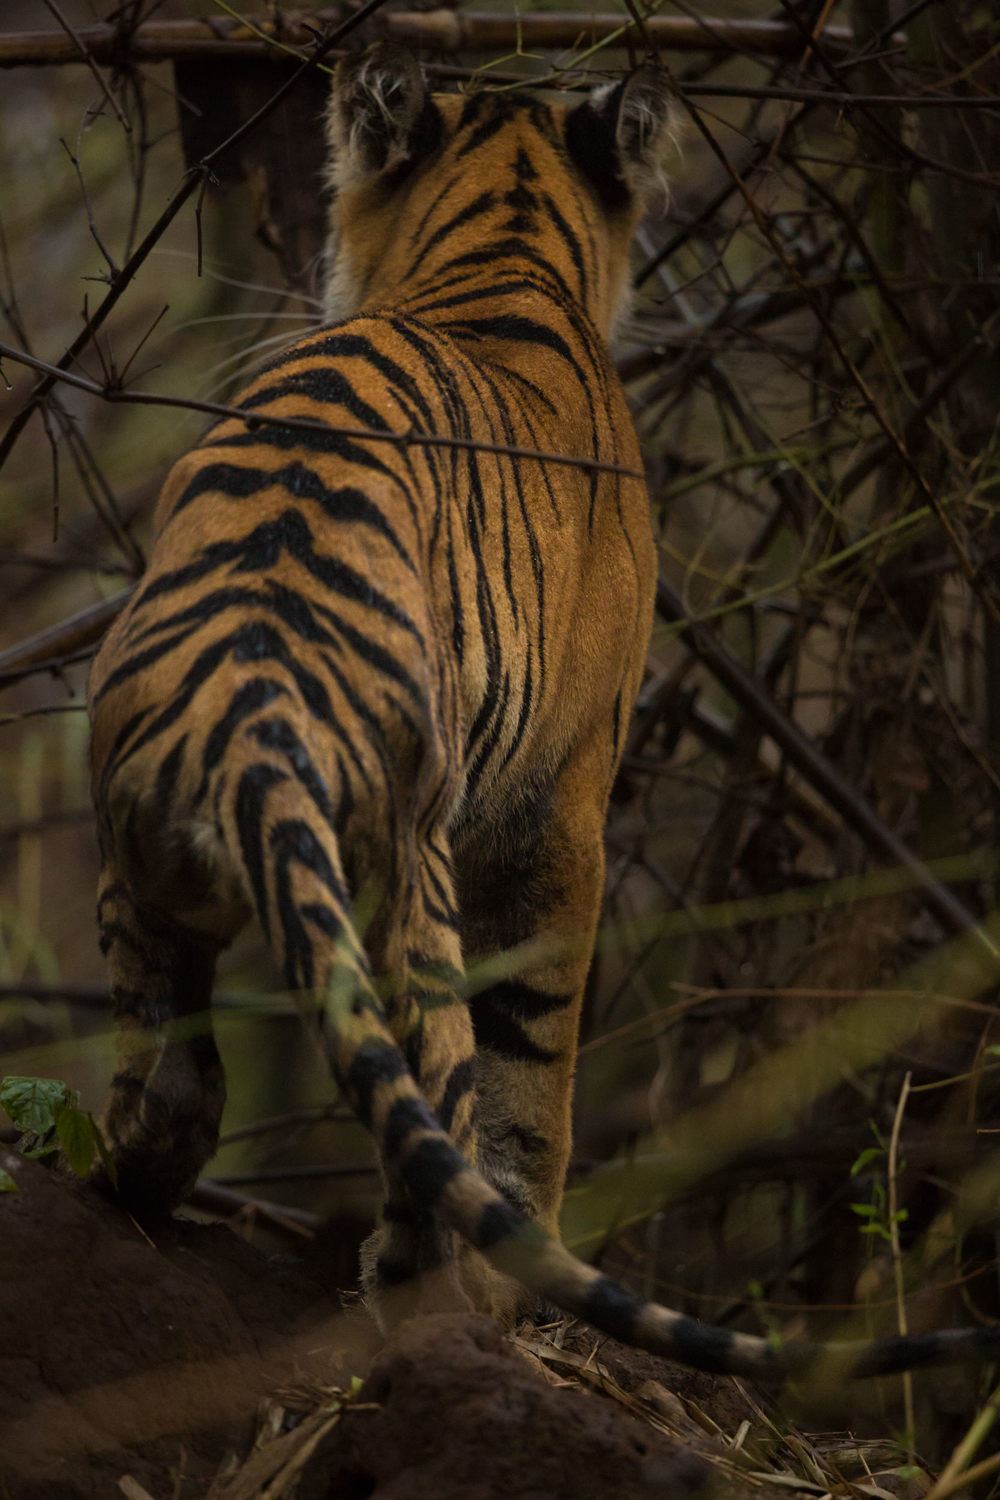 Until finally, after her little solo adventure, she left us, heading back to the river, and back to her mother and siblings. I foresee her joining the ranks of the boldest tigresses in Tadoba Tiger Reserve.